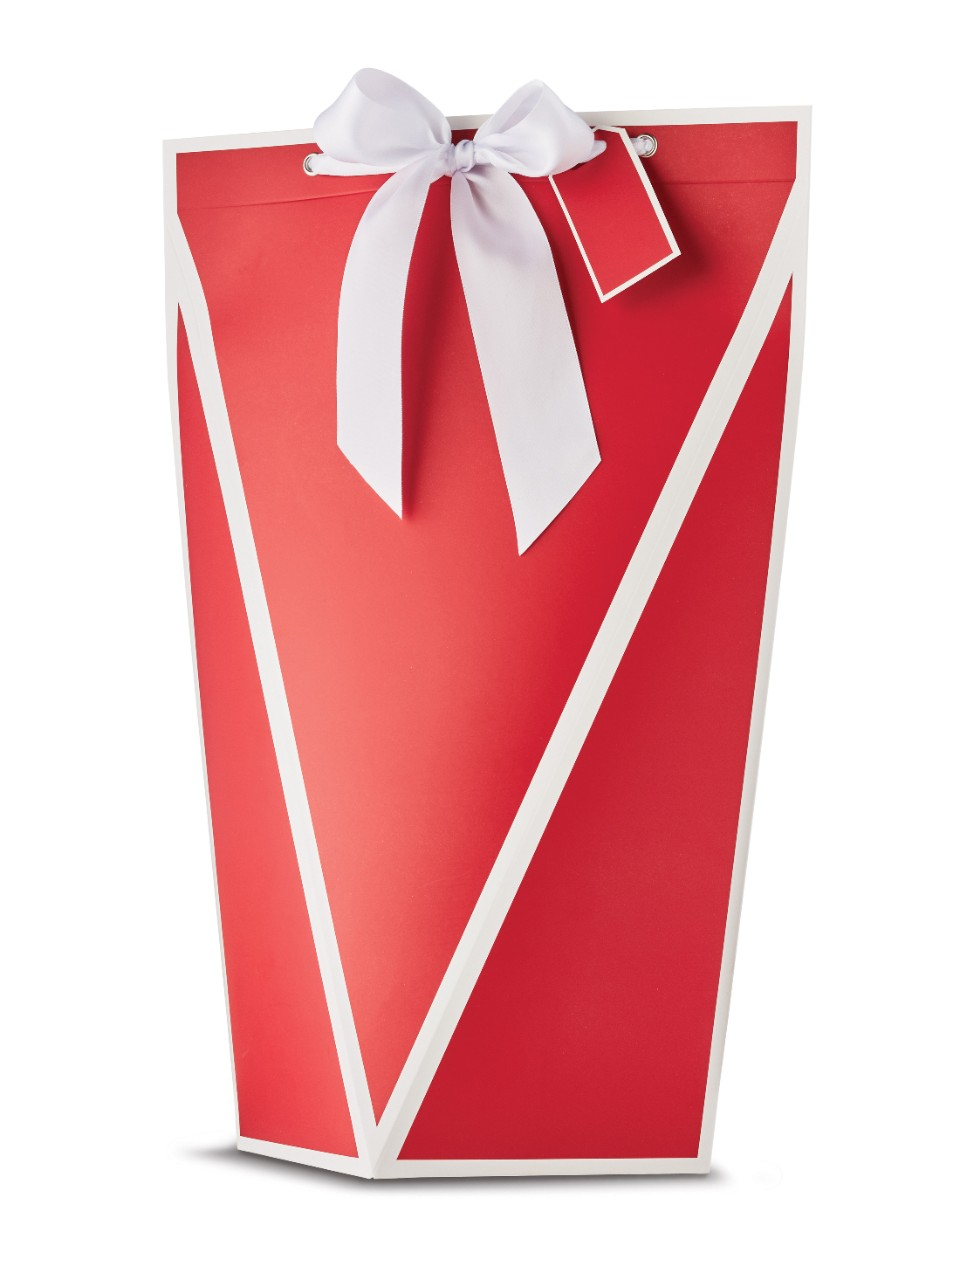 Holiday 2 Bottle Folding Gift Box                                                                                               -A